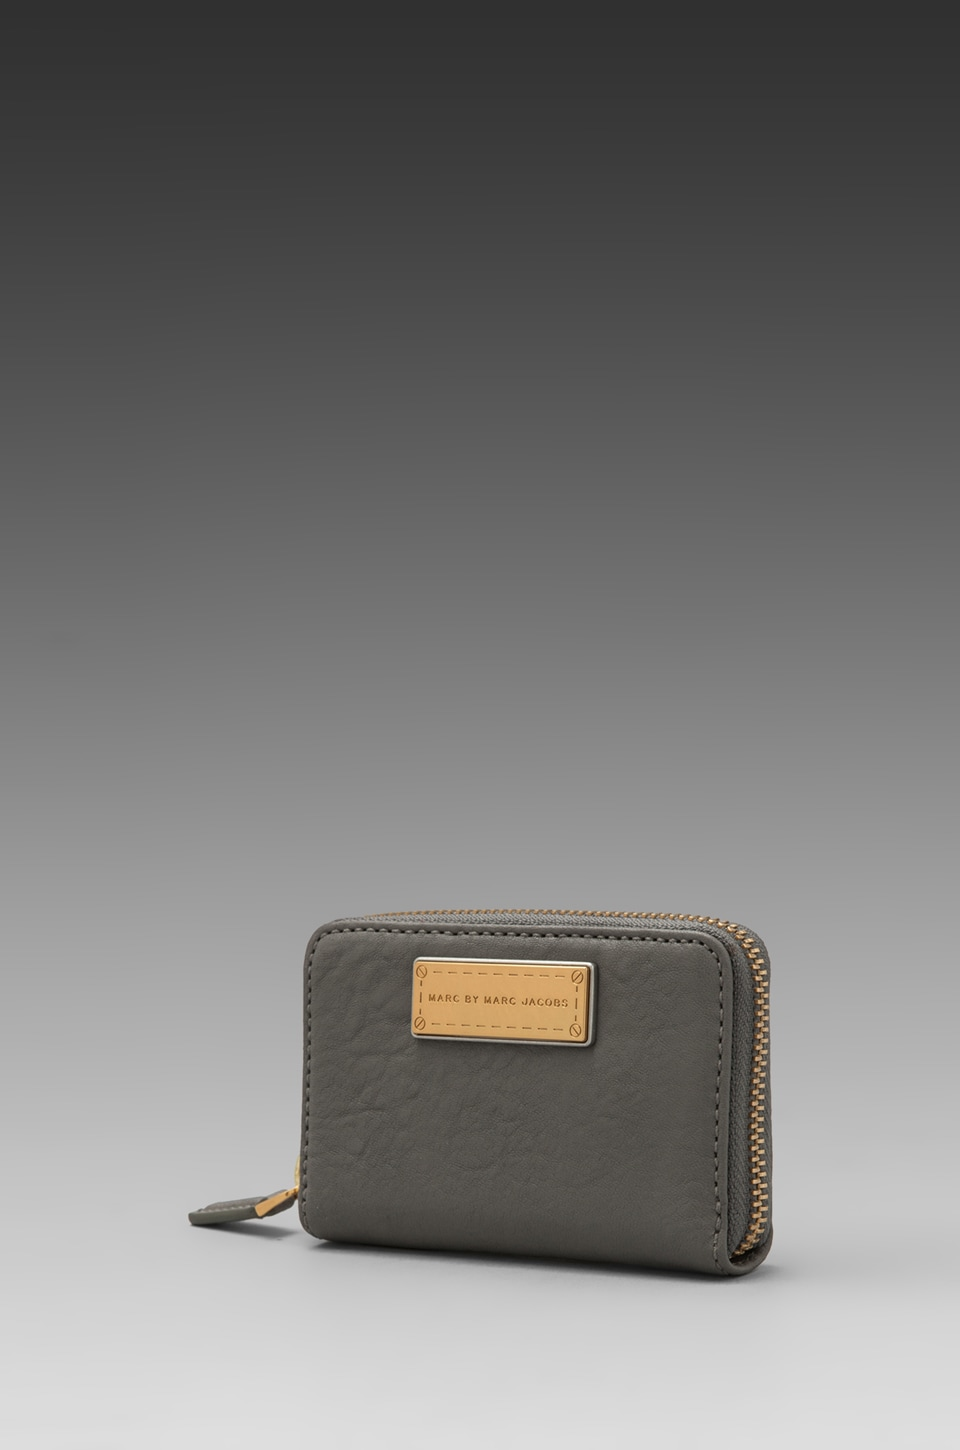 Marc by Marc Jacobs Washed Up Zip Card Case in Cylinder Grey